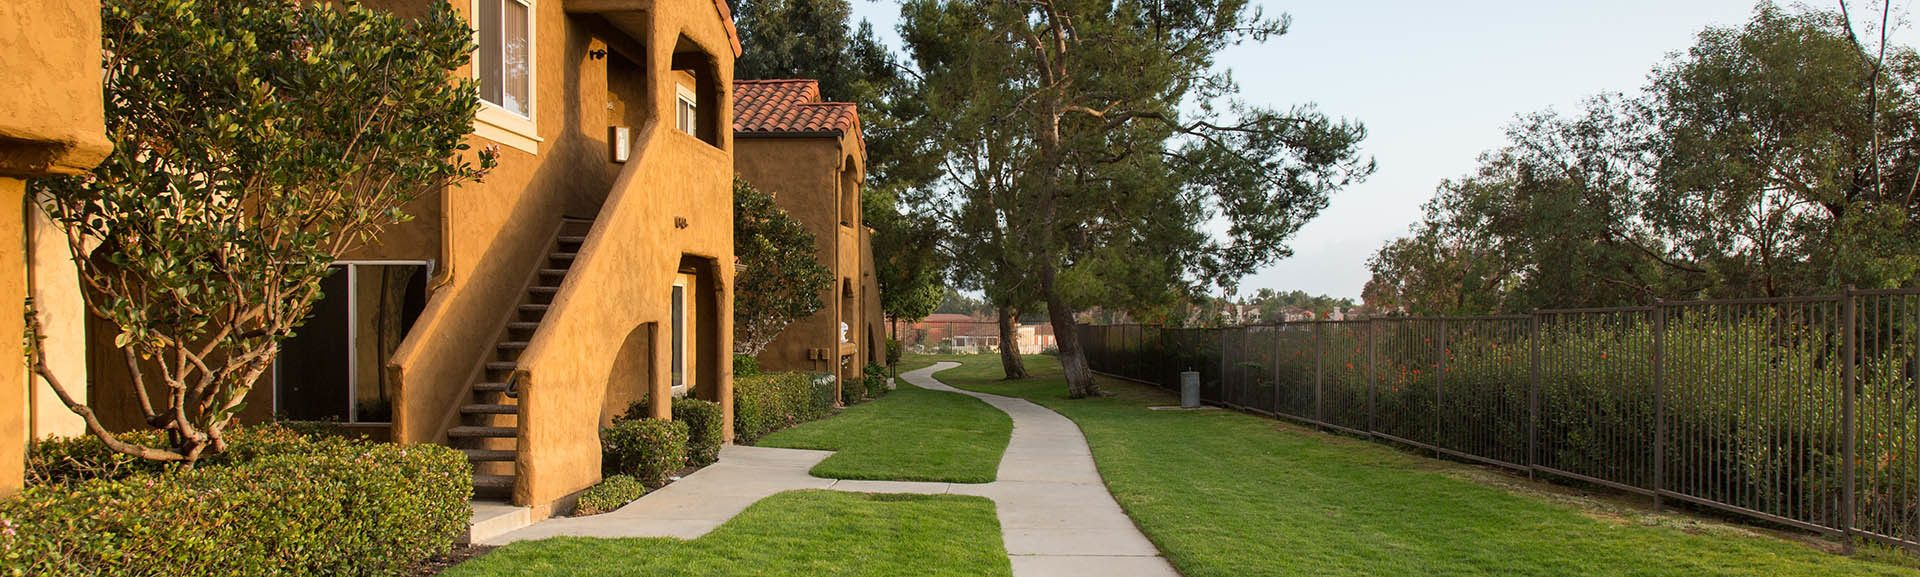 Learn about our neighborhood at Hidden Hills Condominium Rentals in Laguna Niguel, CA on our website